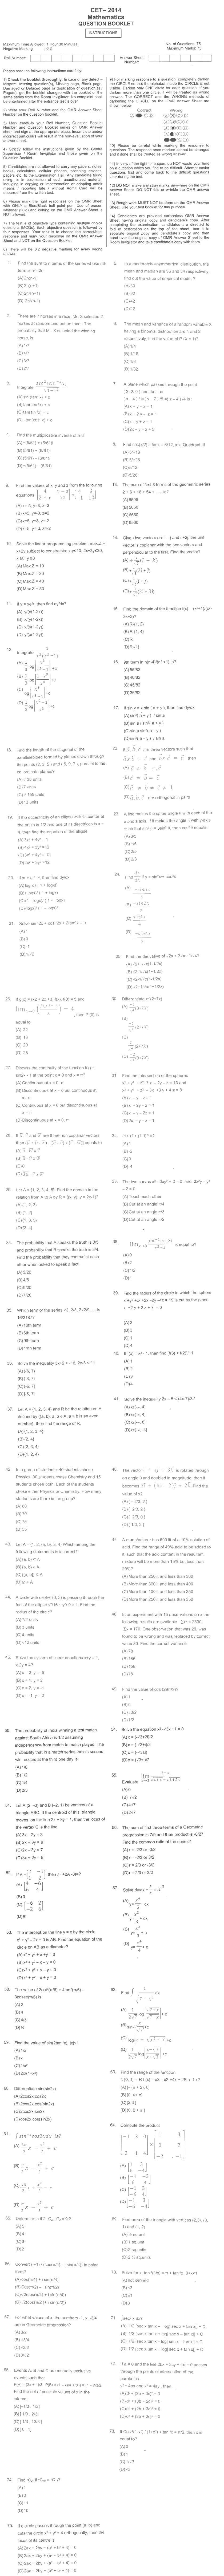 J&K CET 2014 Maths Question Paper